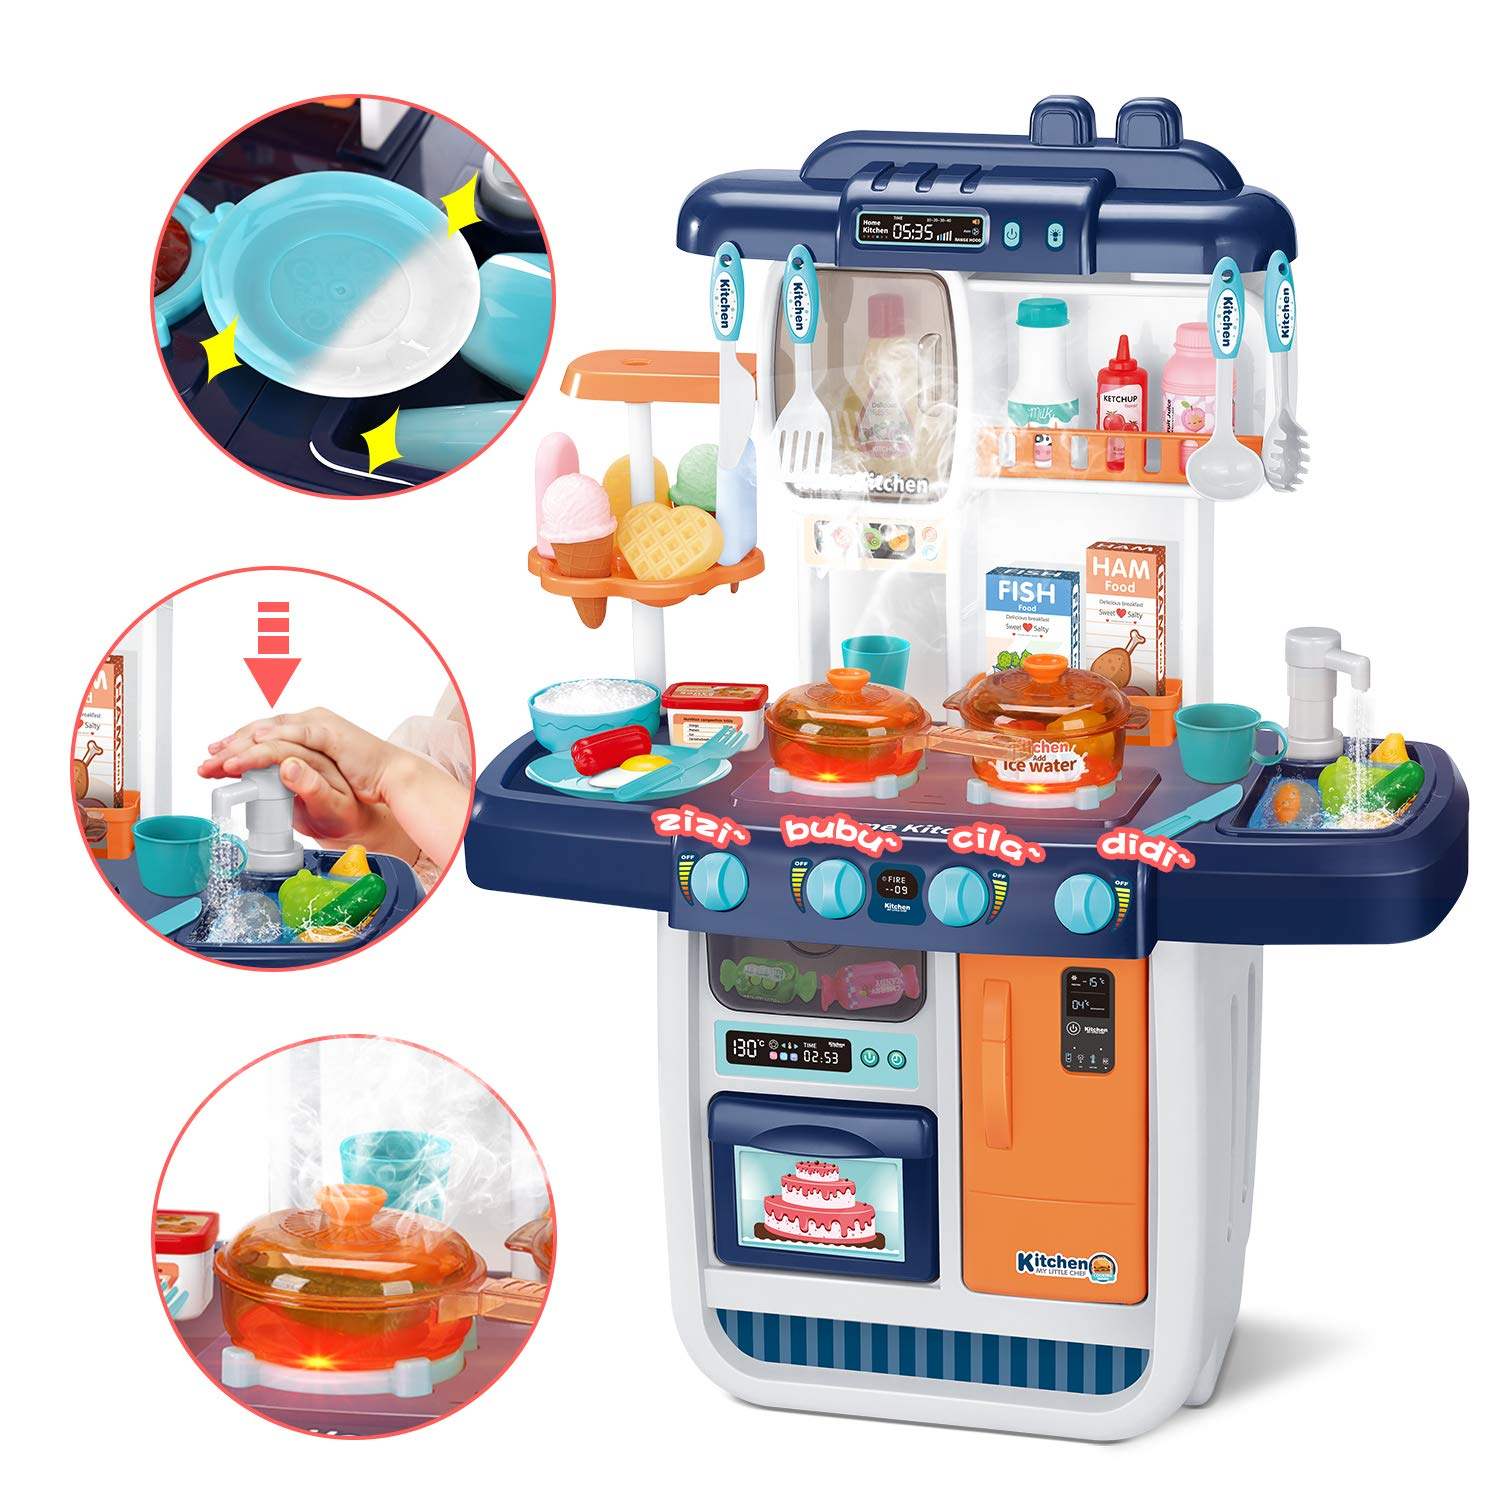 CUTE STONE Kitchen Playset, Kids Play Kitchen with Realistic Lights & Sounds,Simulation of Spray, Play Sink with Running Water,Dessert Shelf Toy & Other Kithen Accessories Set for Girls Boys Toddlers by CUTE STONE